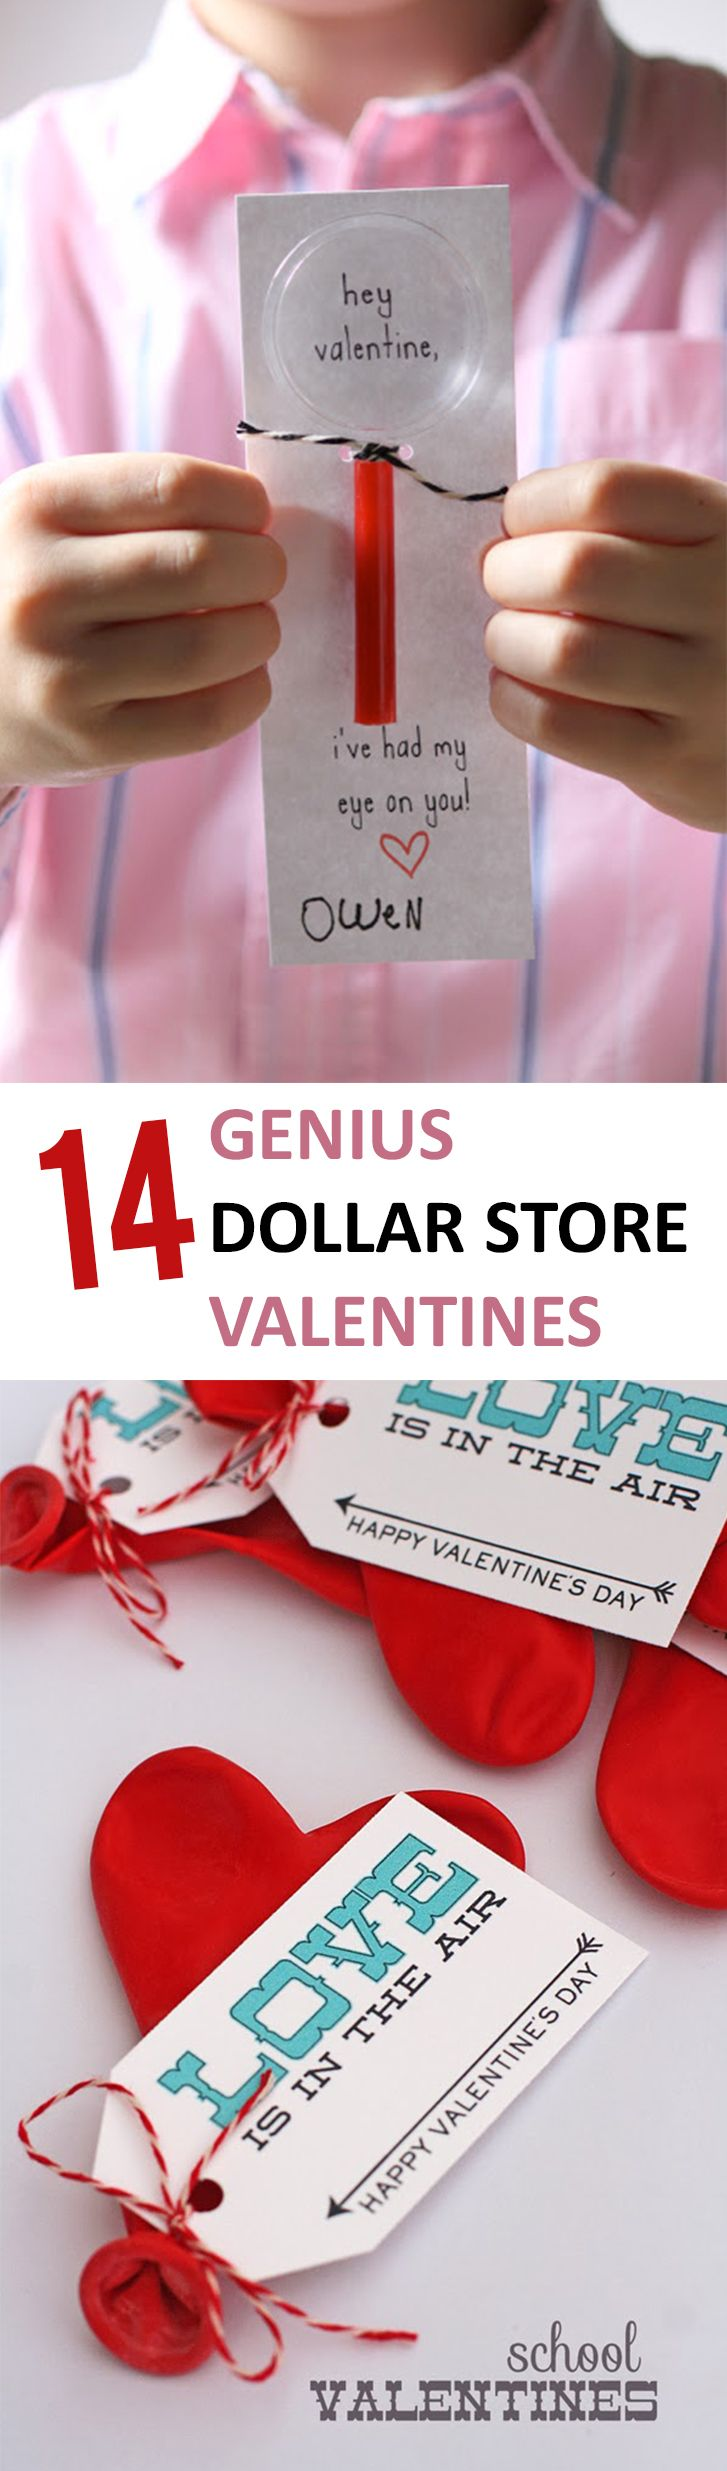 14 Genius Dollar Store Valentines - Sunlit Spaces